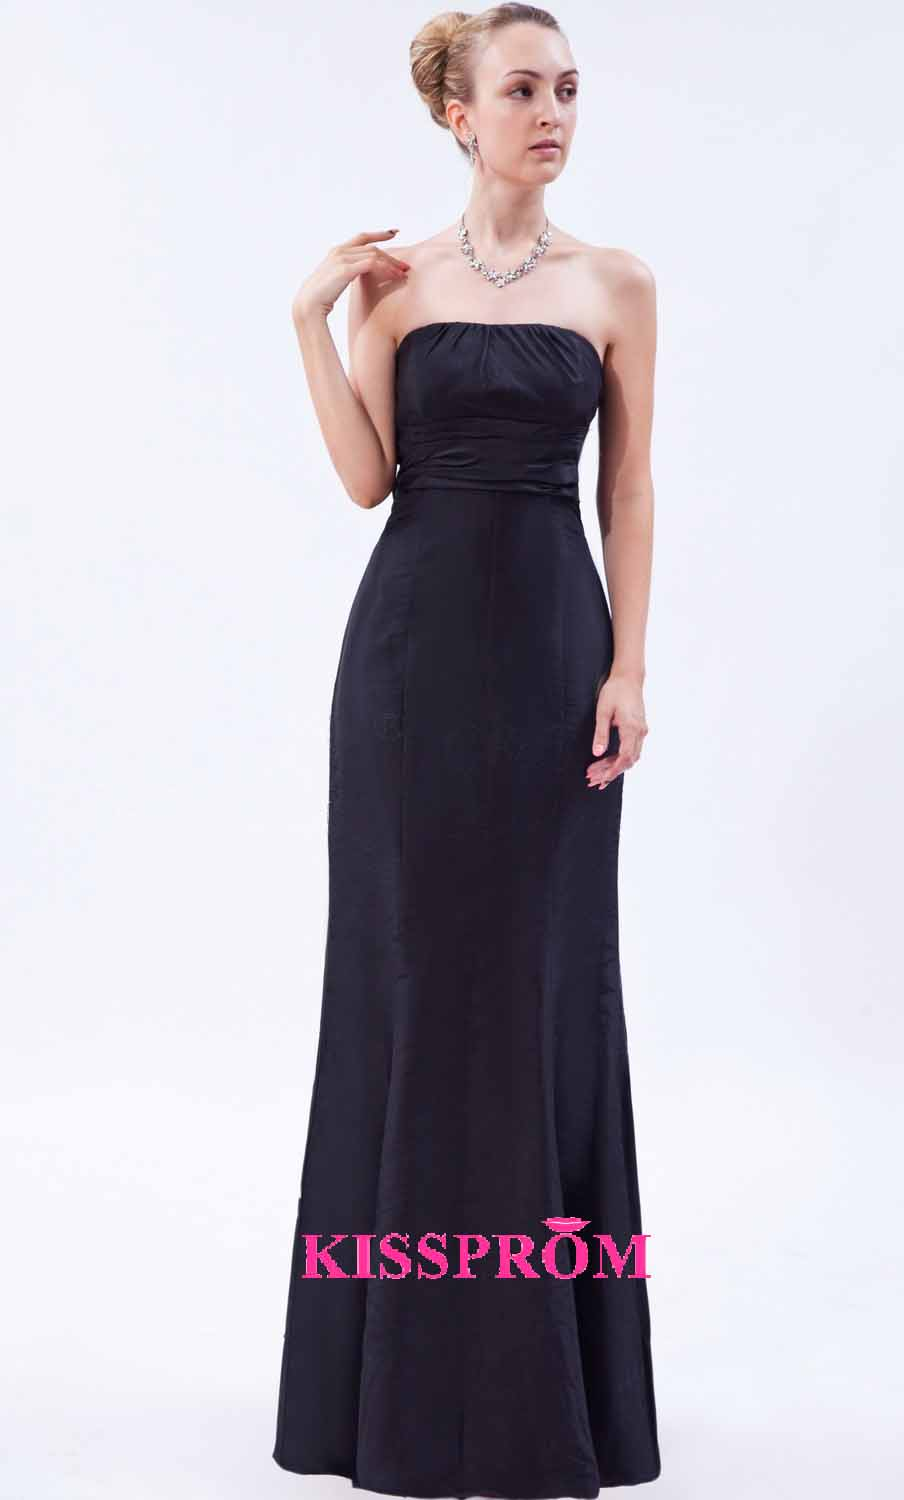 Simple Strapless Trumpet Formal Prom Dresses KSP206 [KSP206] - £88.00 : Cheap Prom Dresses Uk, Bridesmaid Dresses, 2014 Prom & Evening Dresses, Look for cheap elegant prom dresses 2014, cocktail gowns, or dresses for special occasions? kissprom.co.uk offers various bridesmaid dresses, evening dress, free shipping to UK etc.